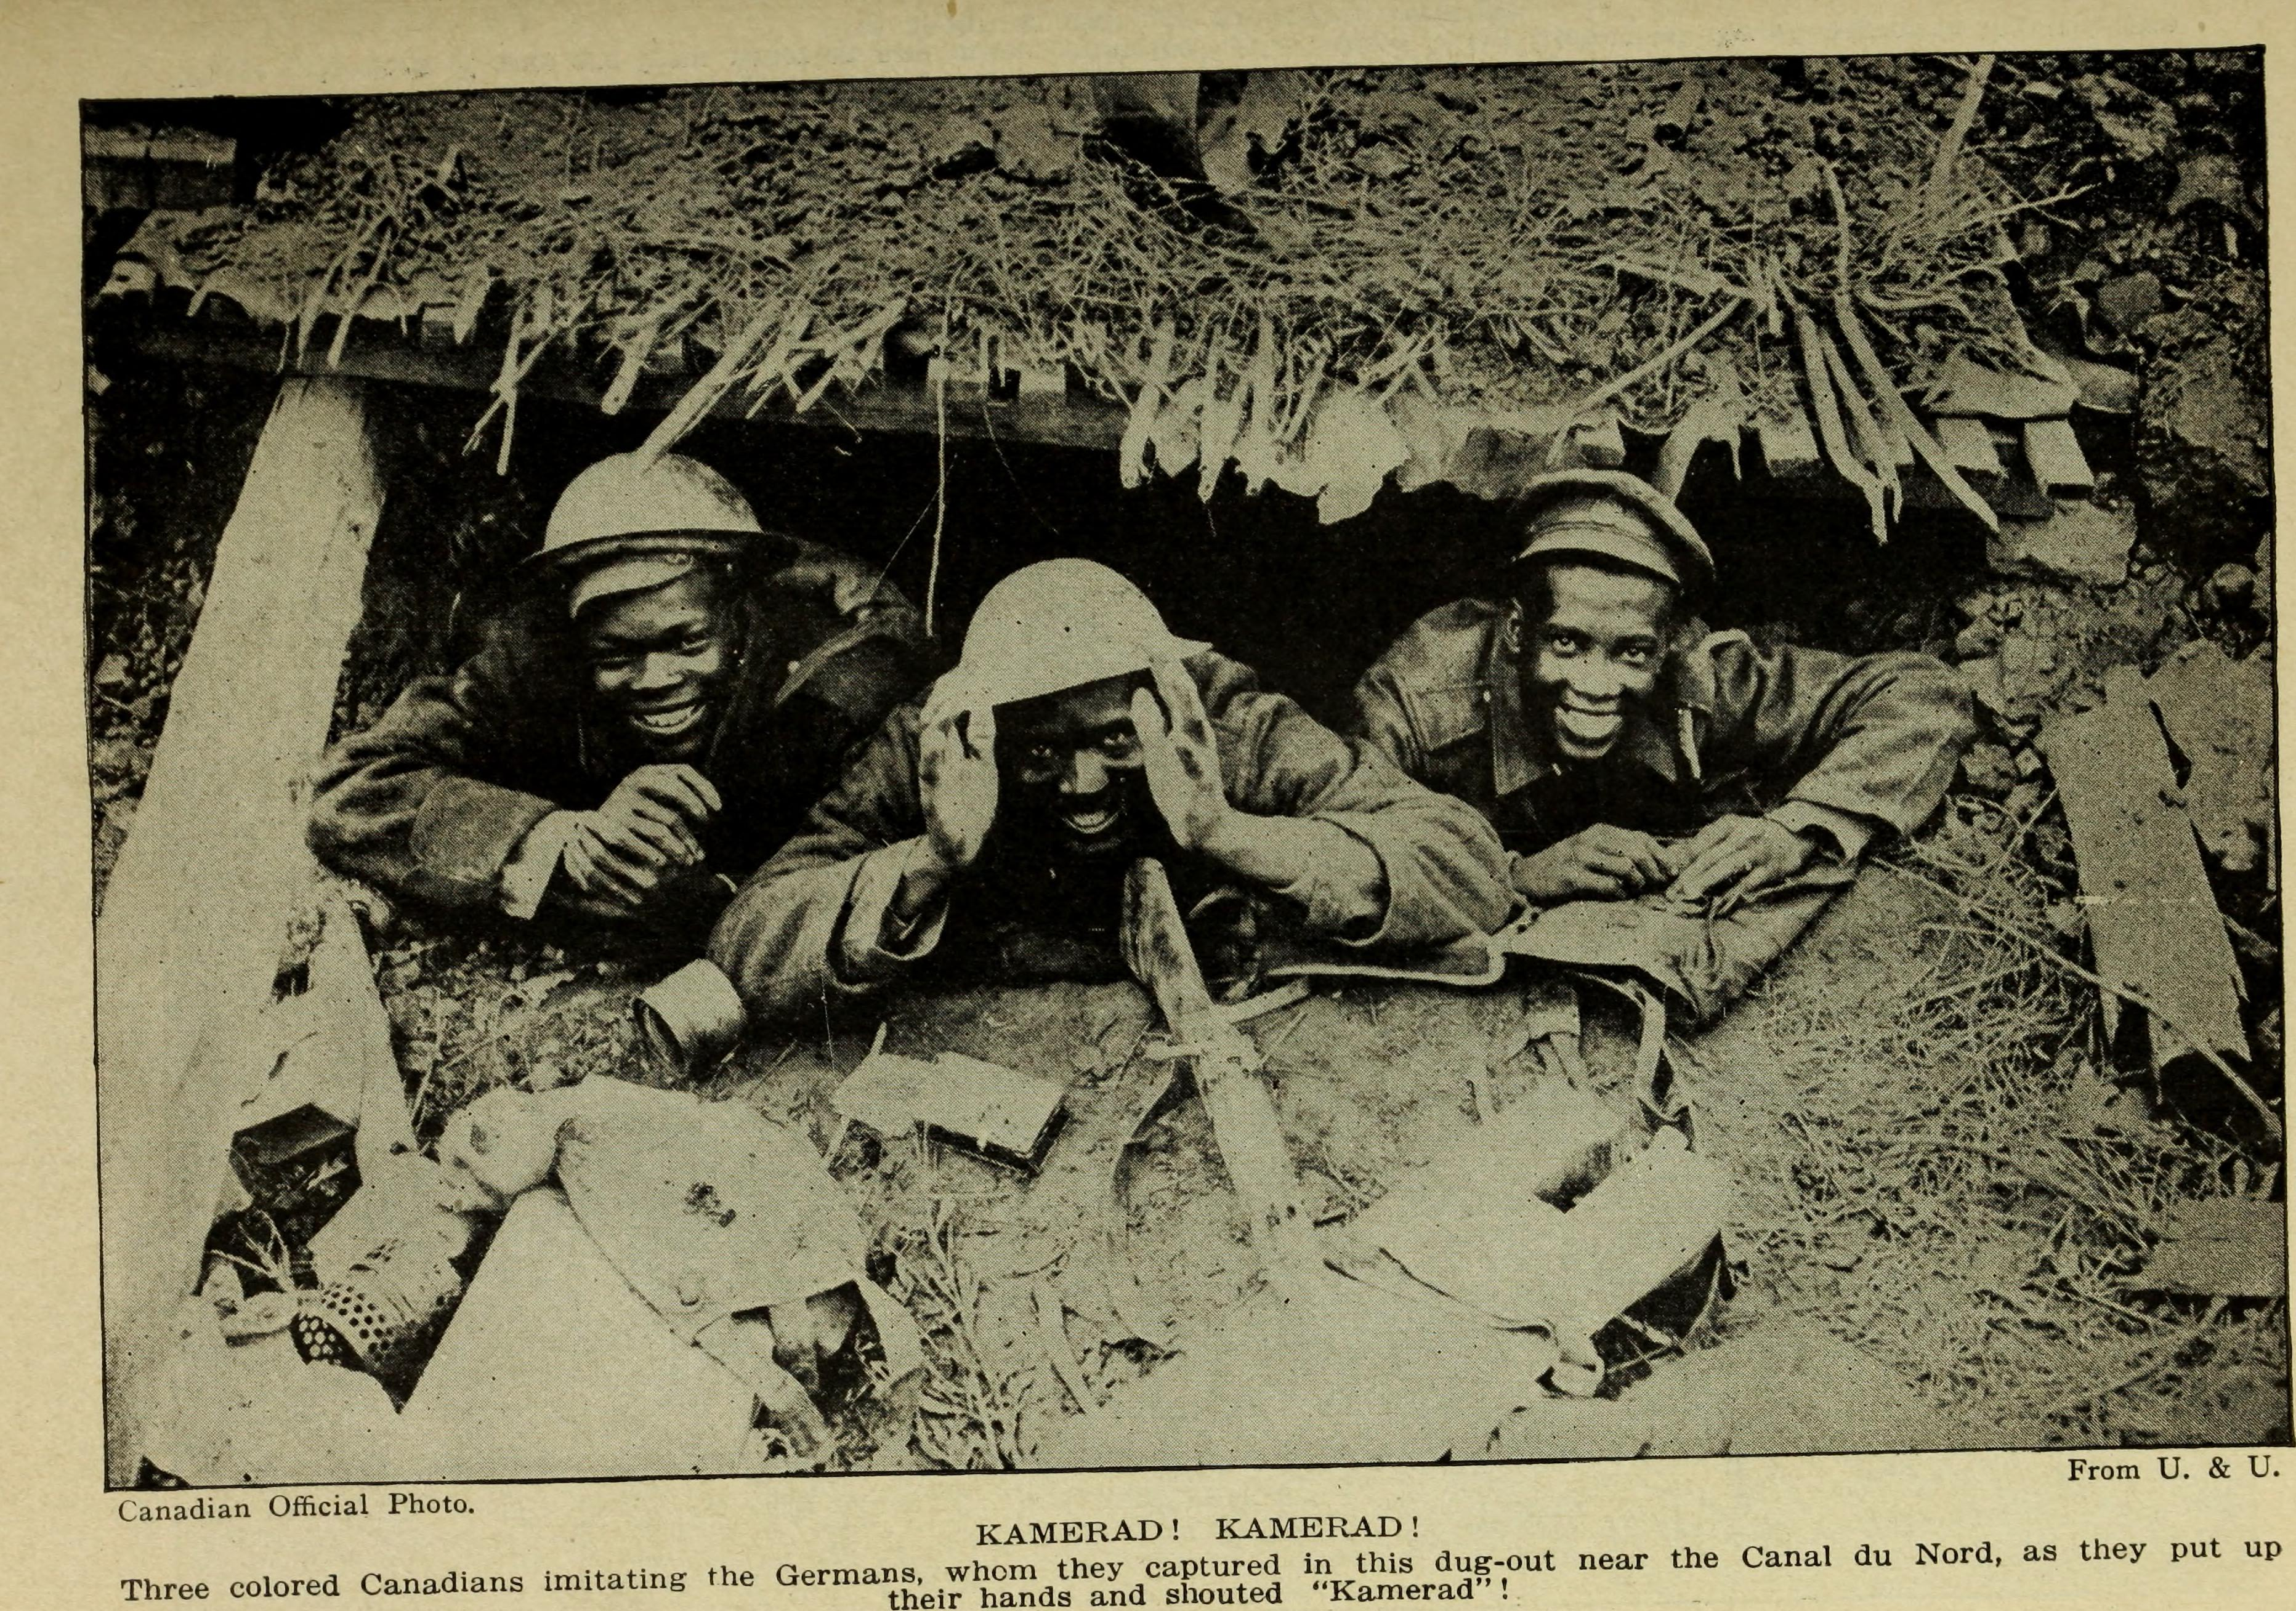 Account of the history of the world war i and the internet